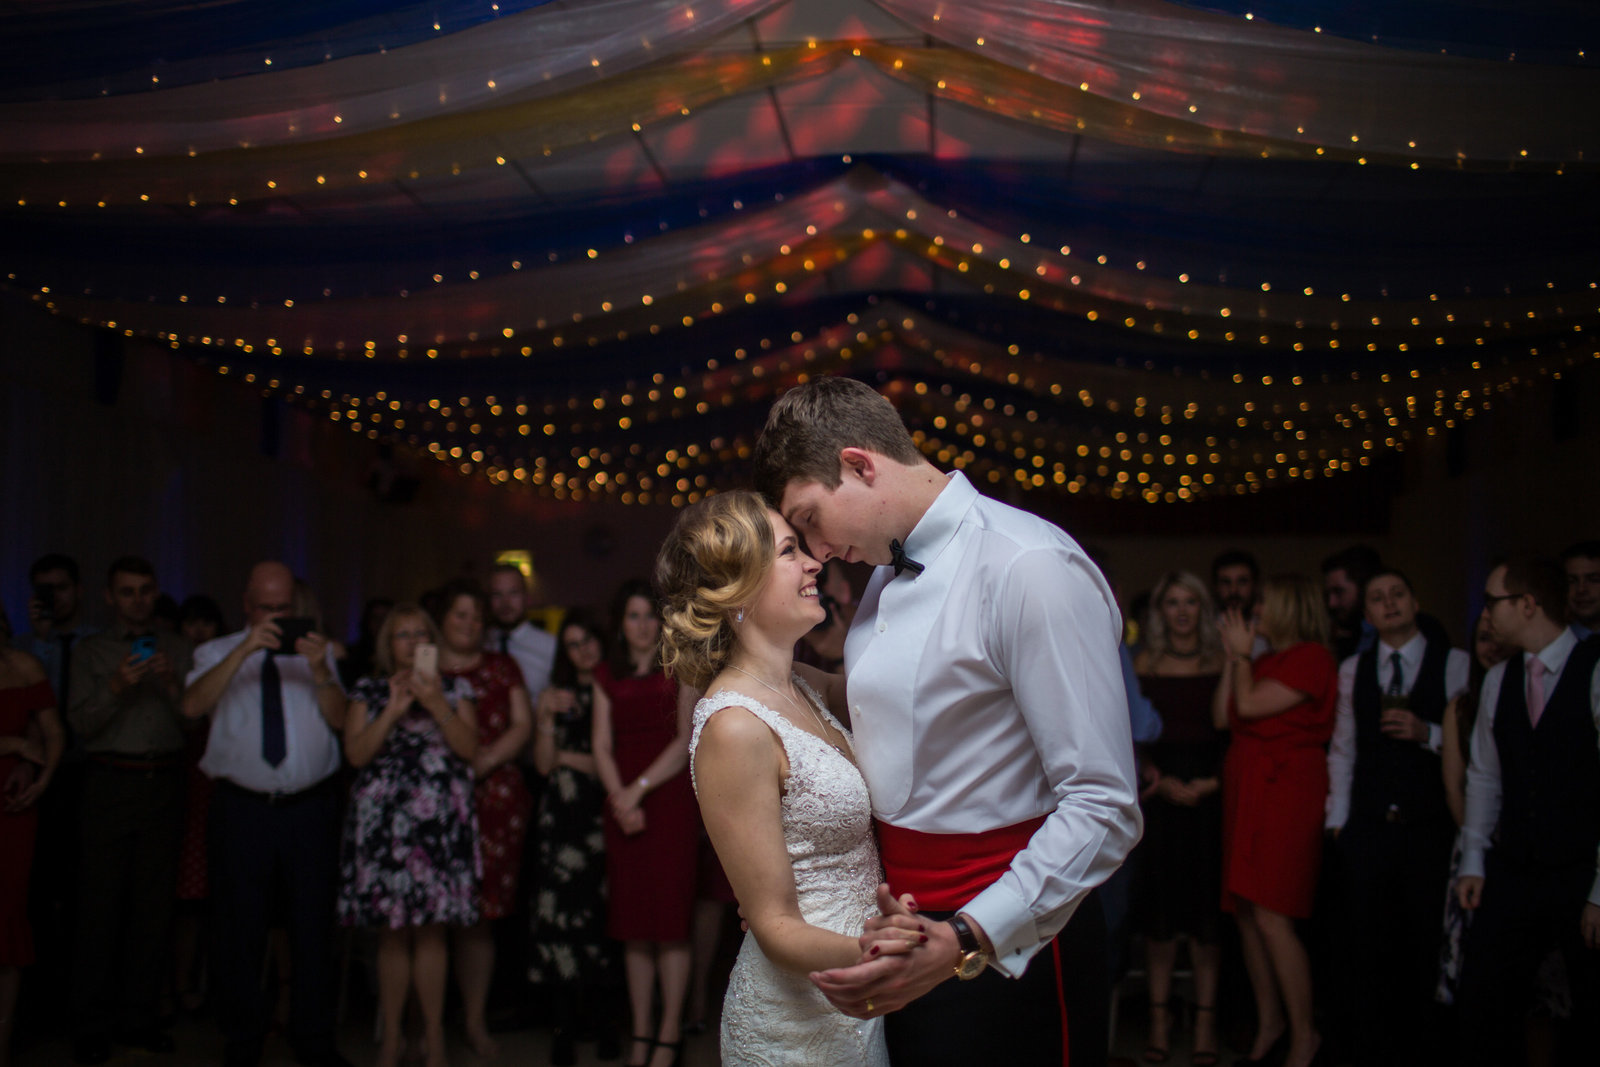 A bride and Groom hug closely during their first dance. The room is dimly lit with lighting on them only. They're surrounded by fairy lights.